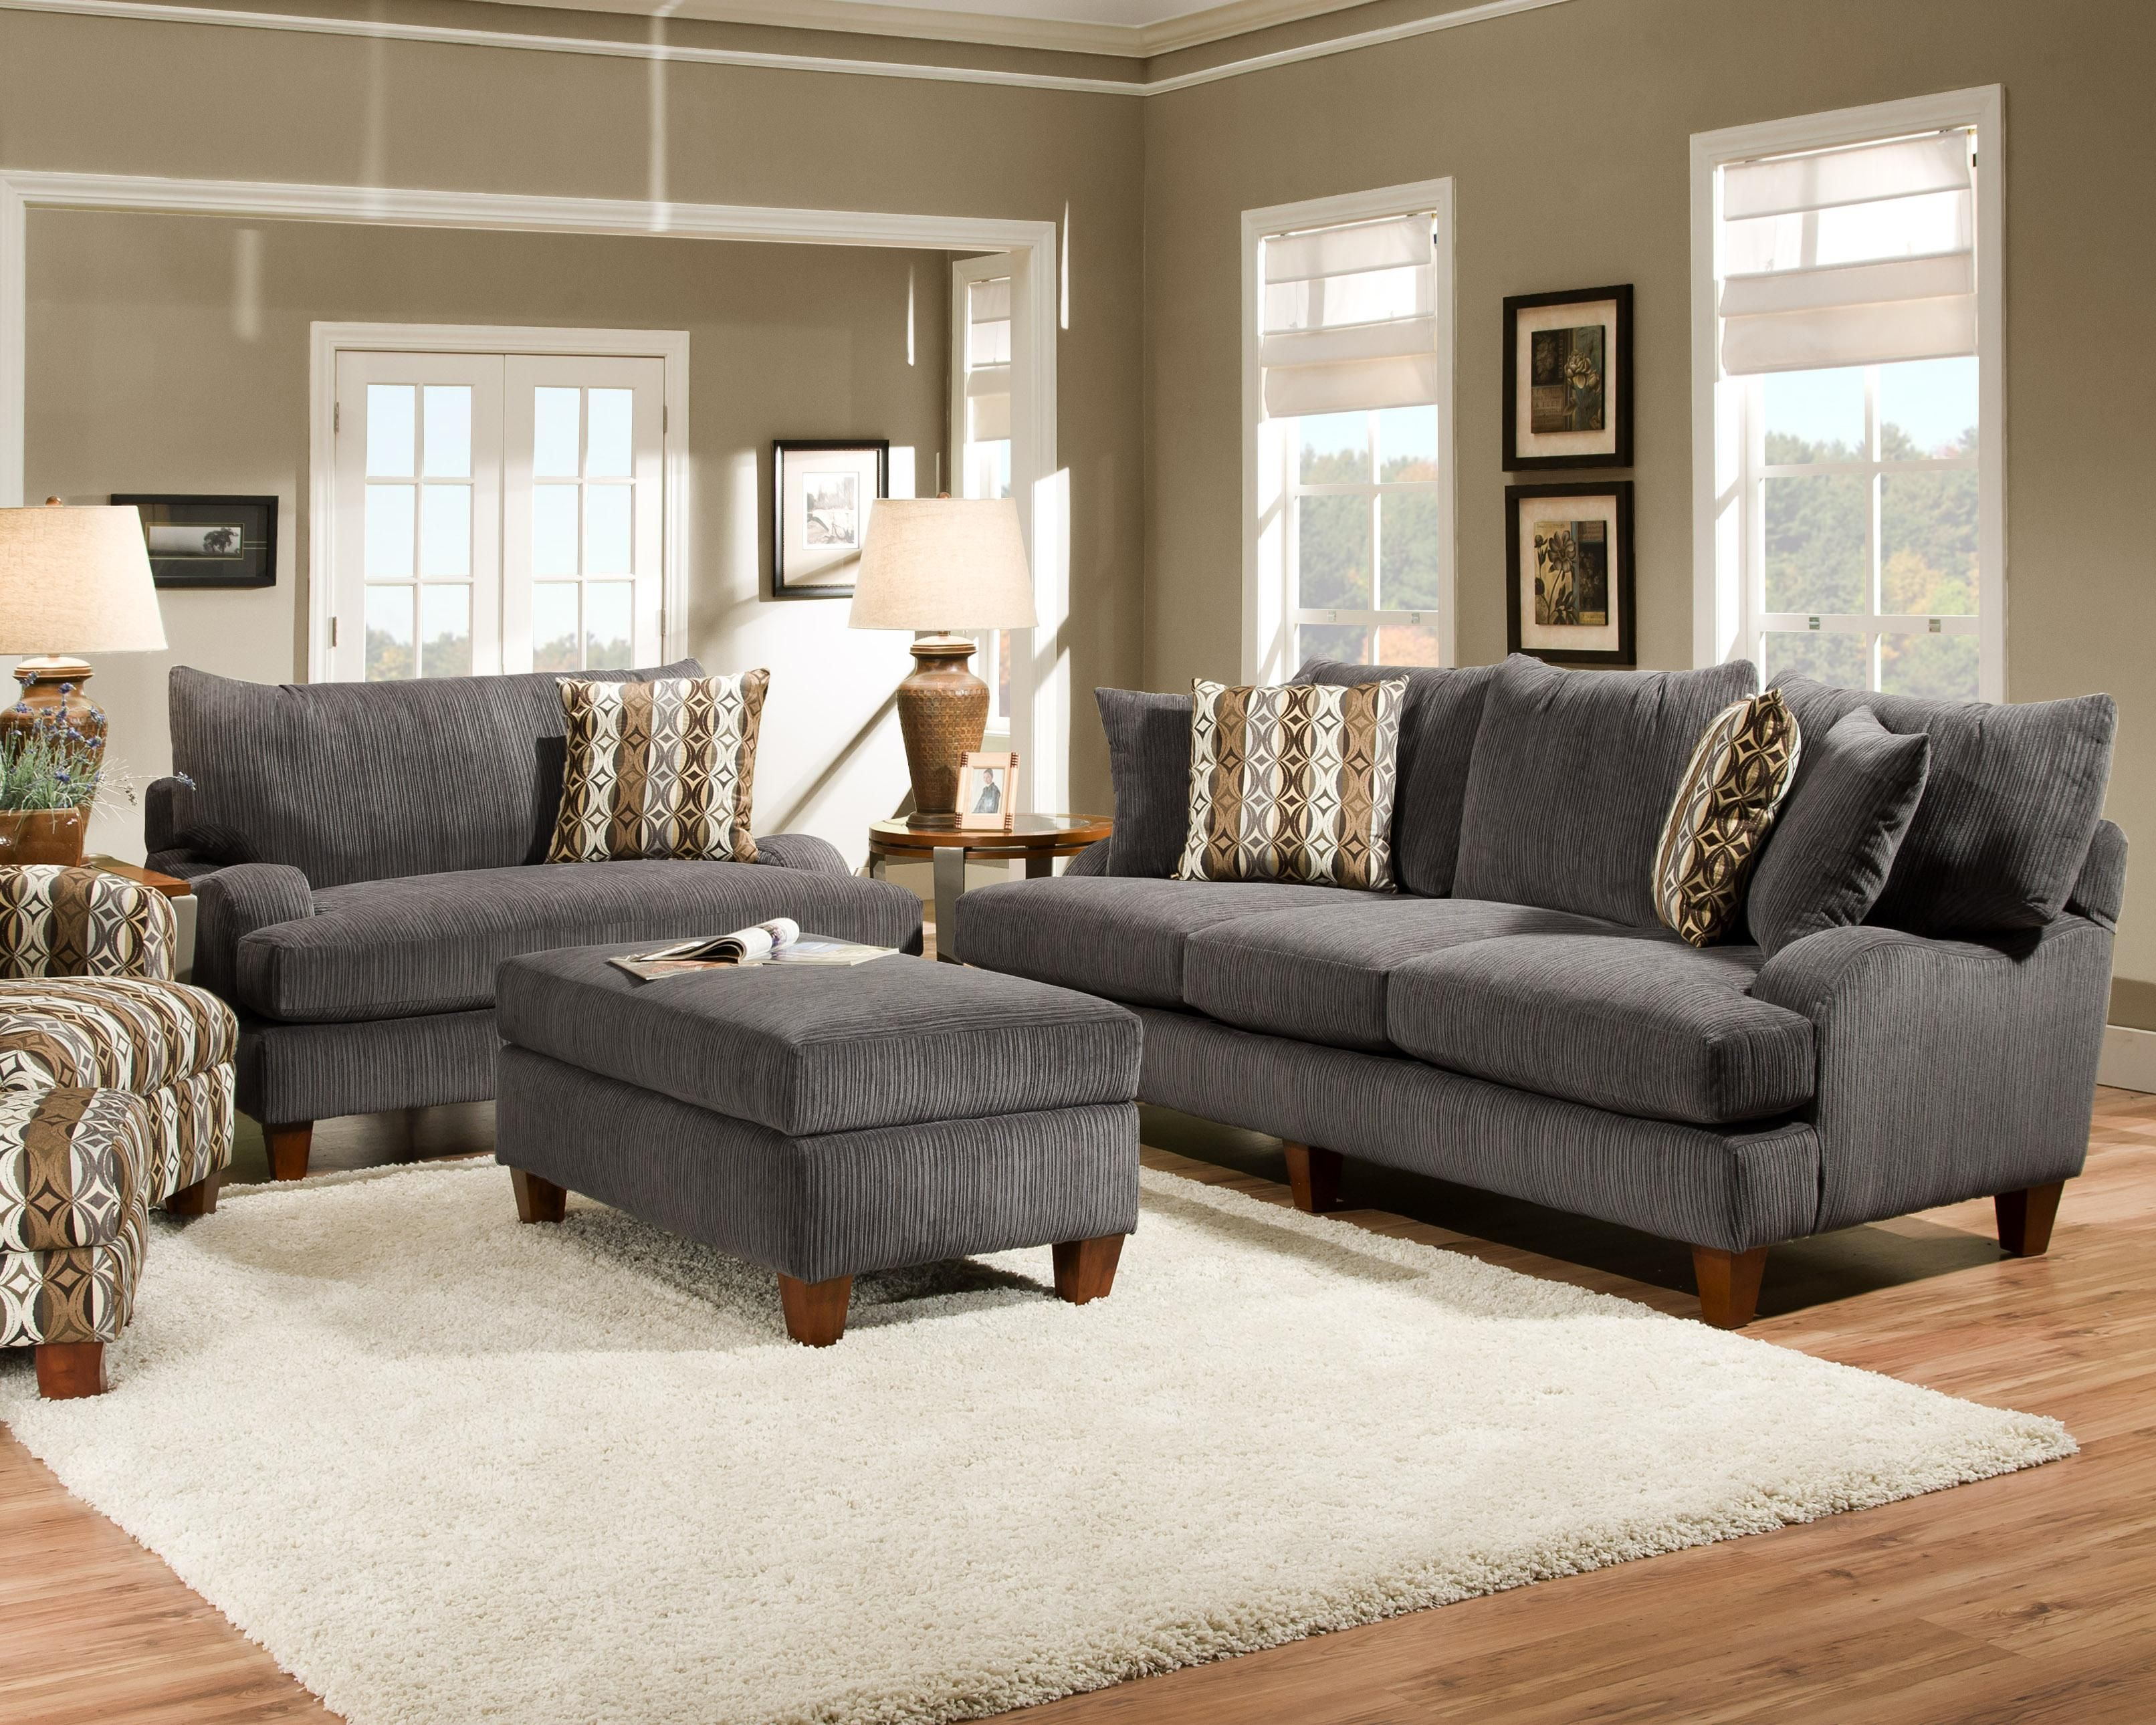 Image Result For Gray Rustic Living Rooms Living Room Decor Gray Tan Living Room Living Room Grey